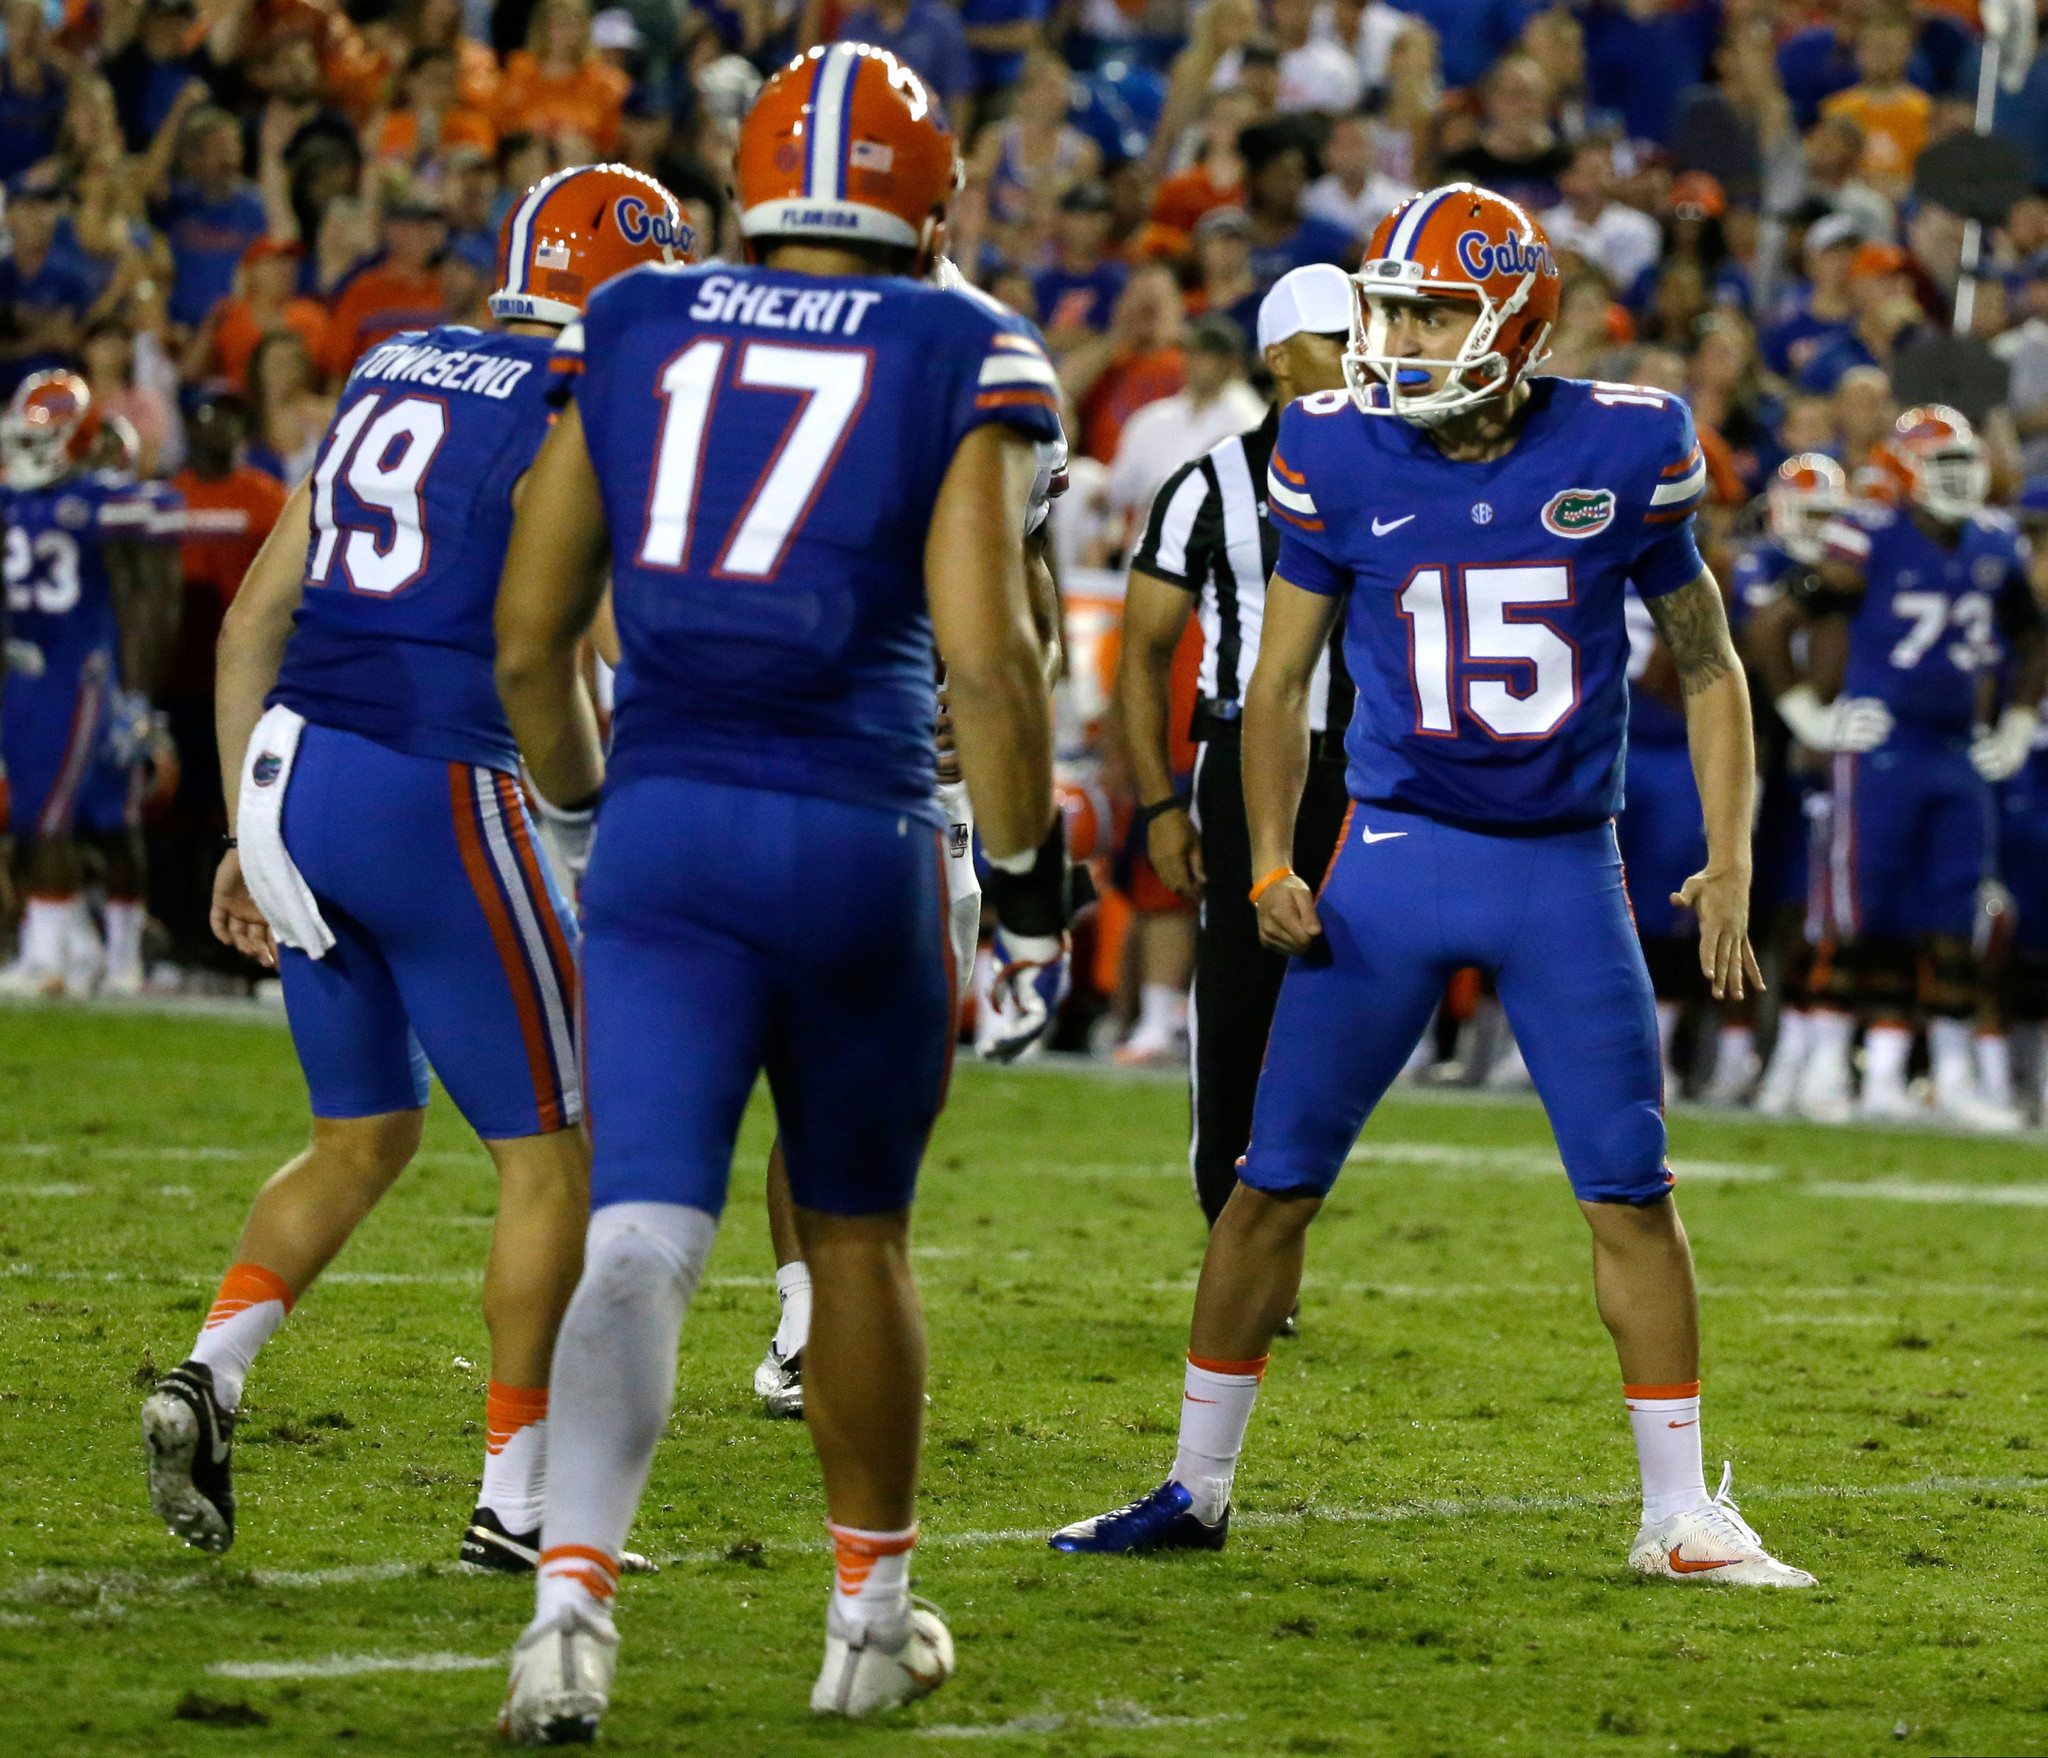 Os-florida-gators-umass-game-story-20160903